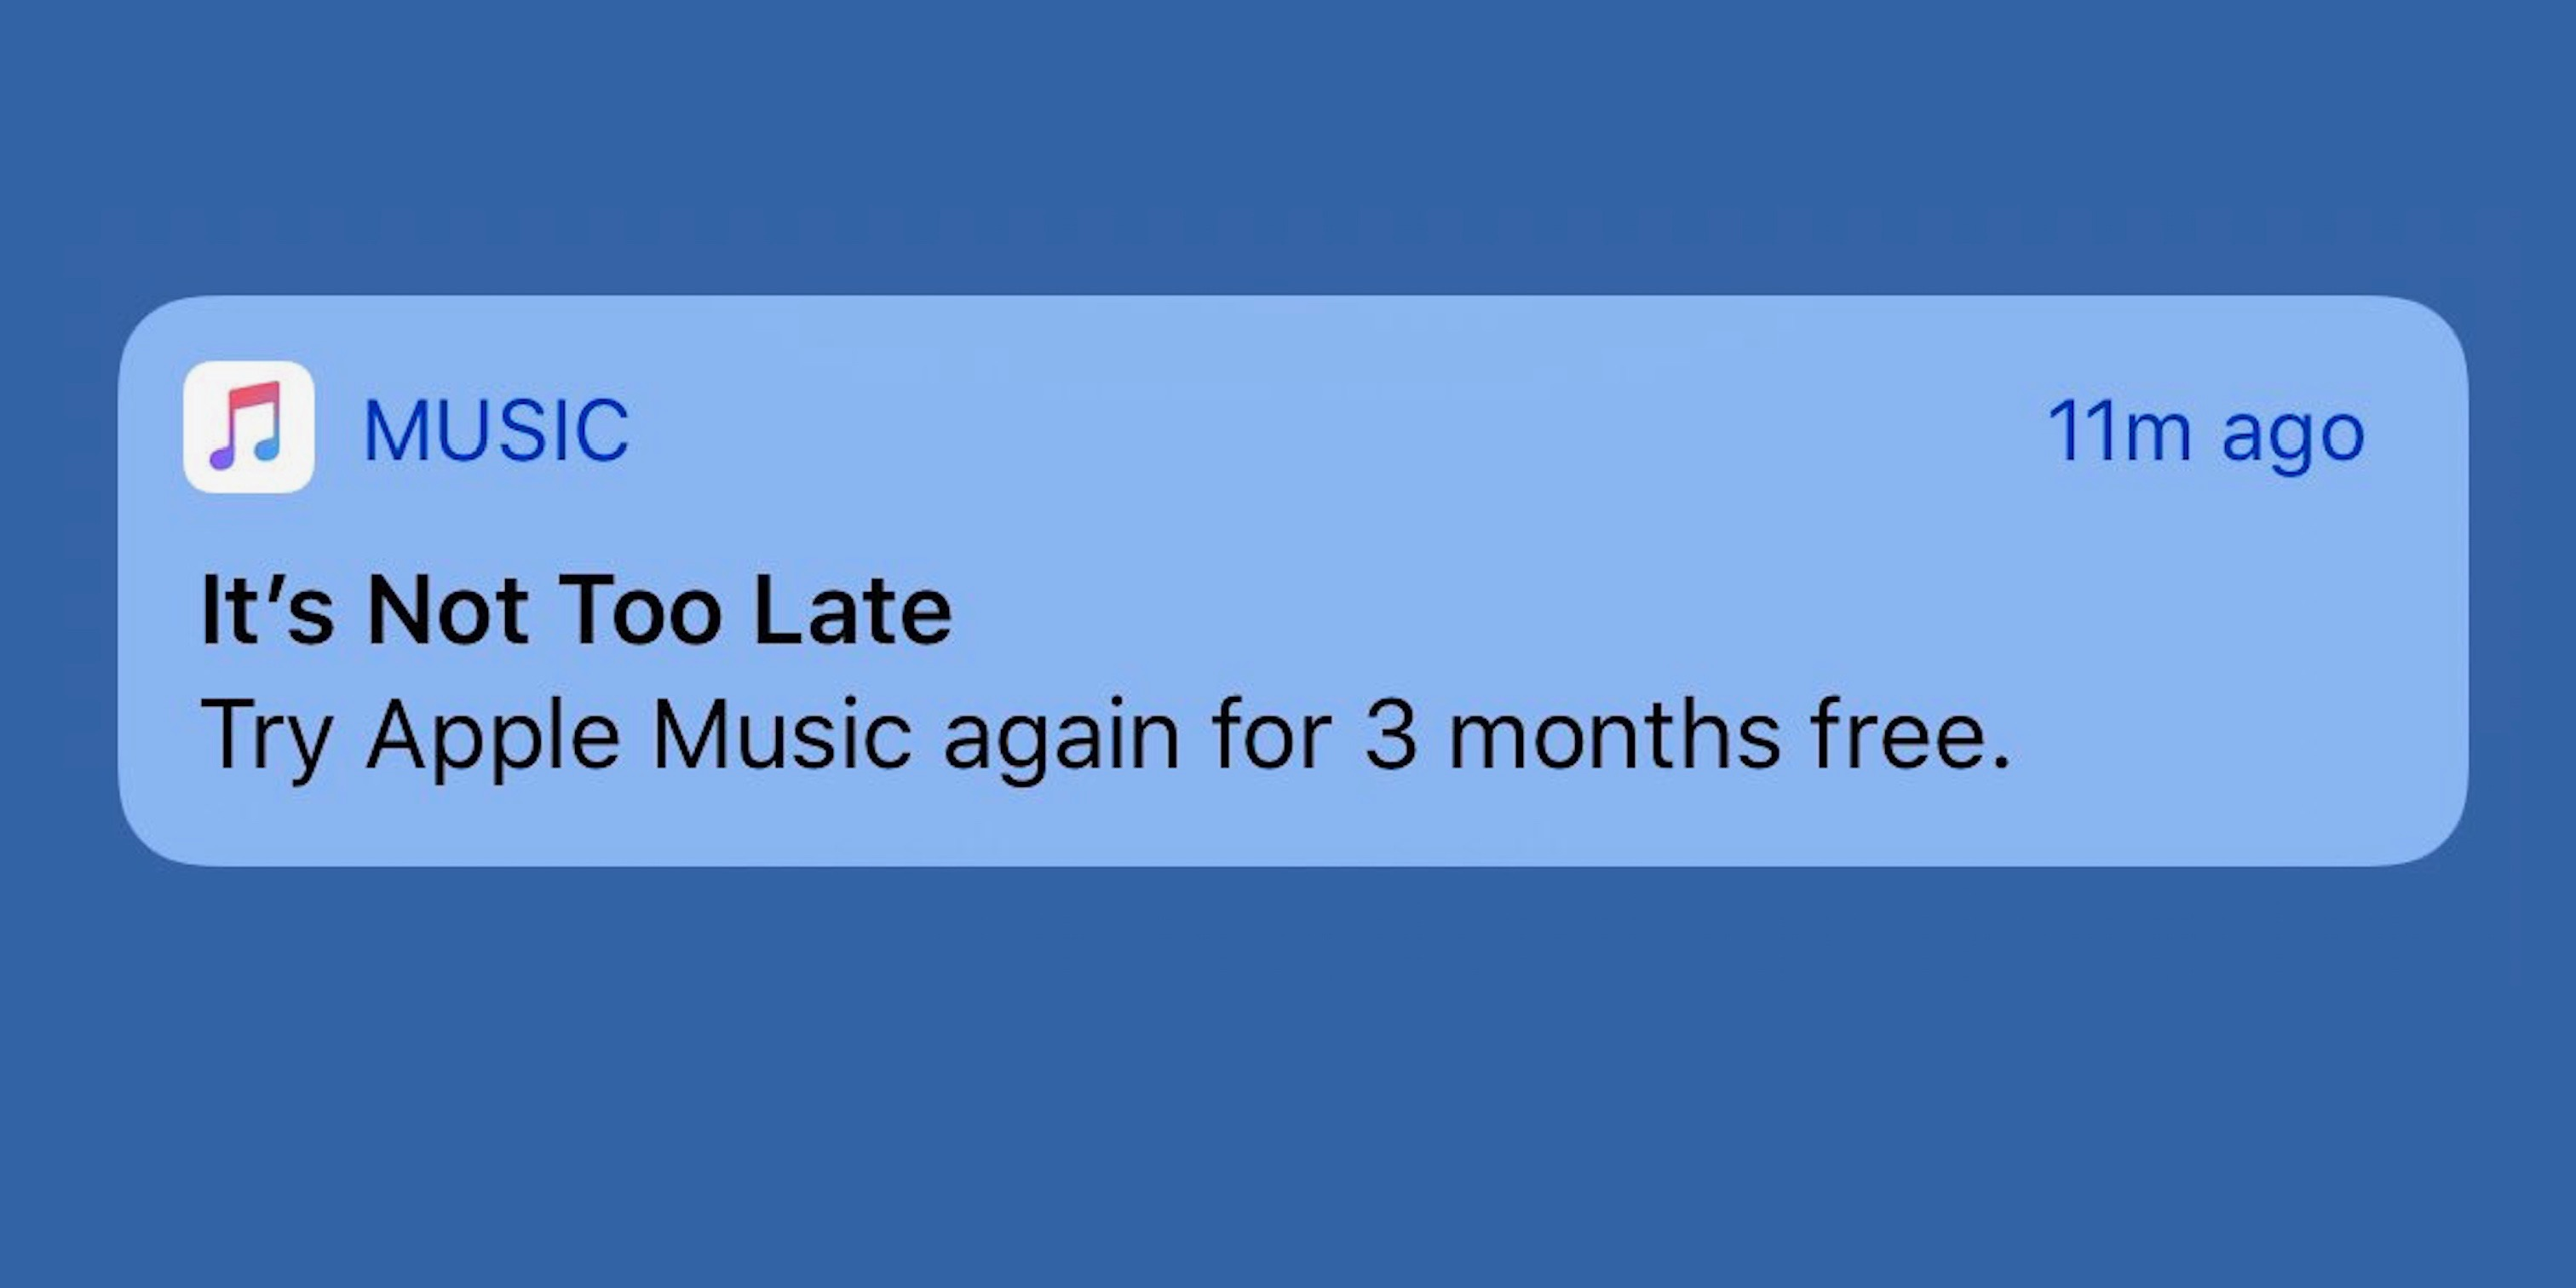 Apple sending push notifications to former Apple Music subscribers offering new free trial